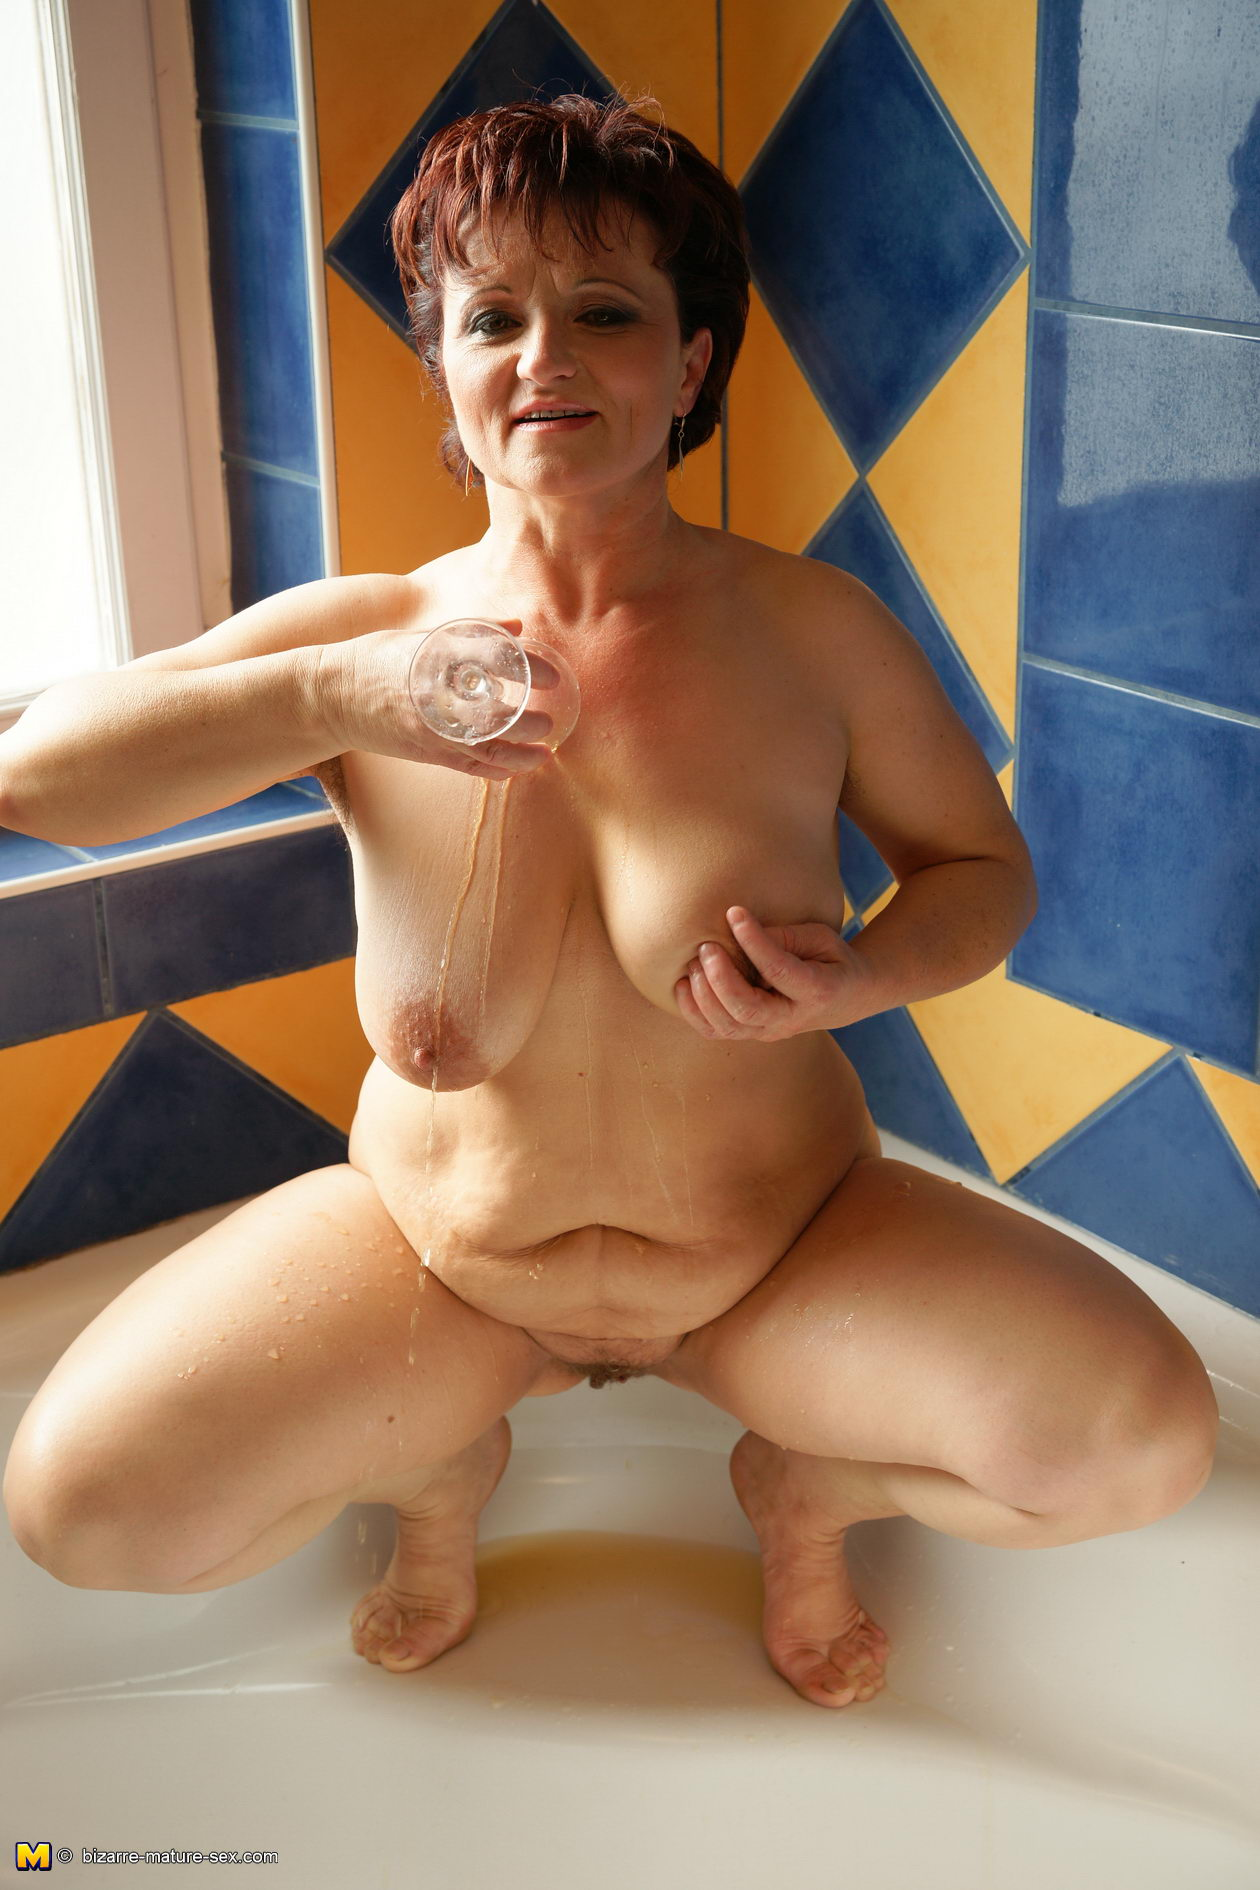 Mature Women With Saggy Boobs